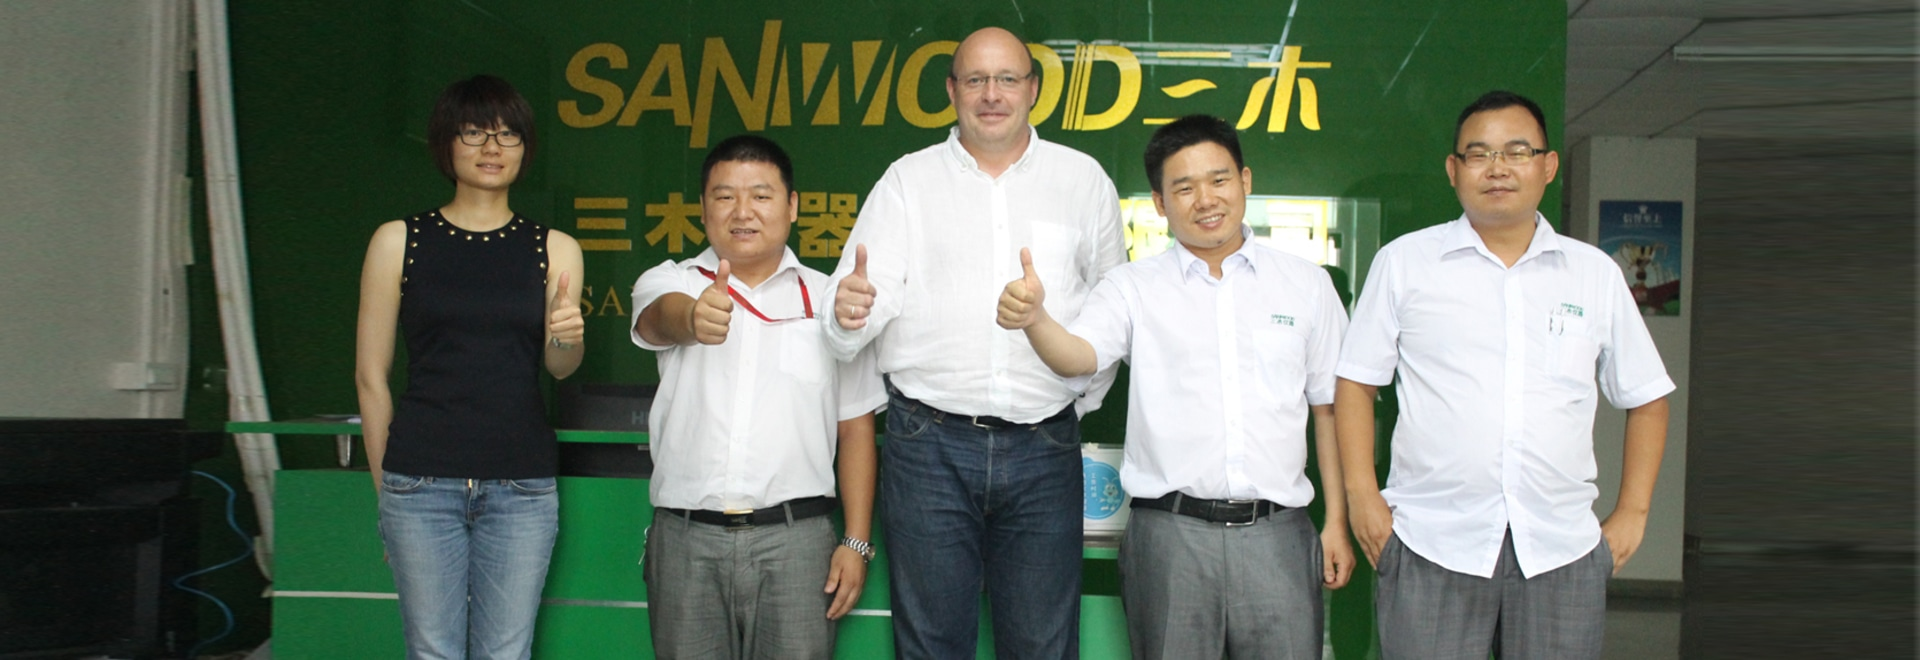 Thanks for Germany customer visiting Sanwood and directing our work